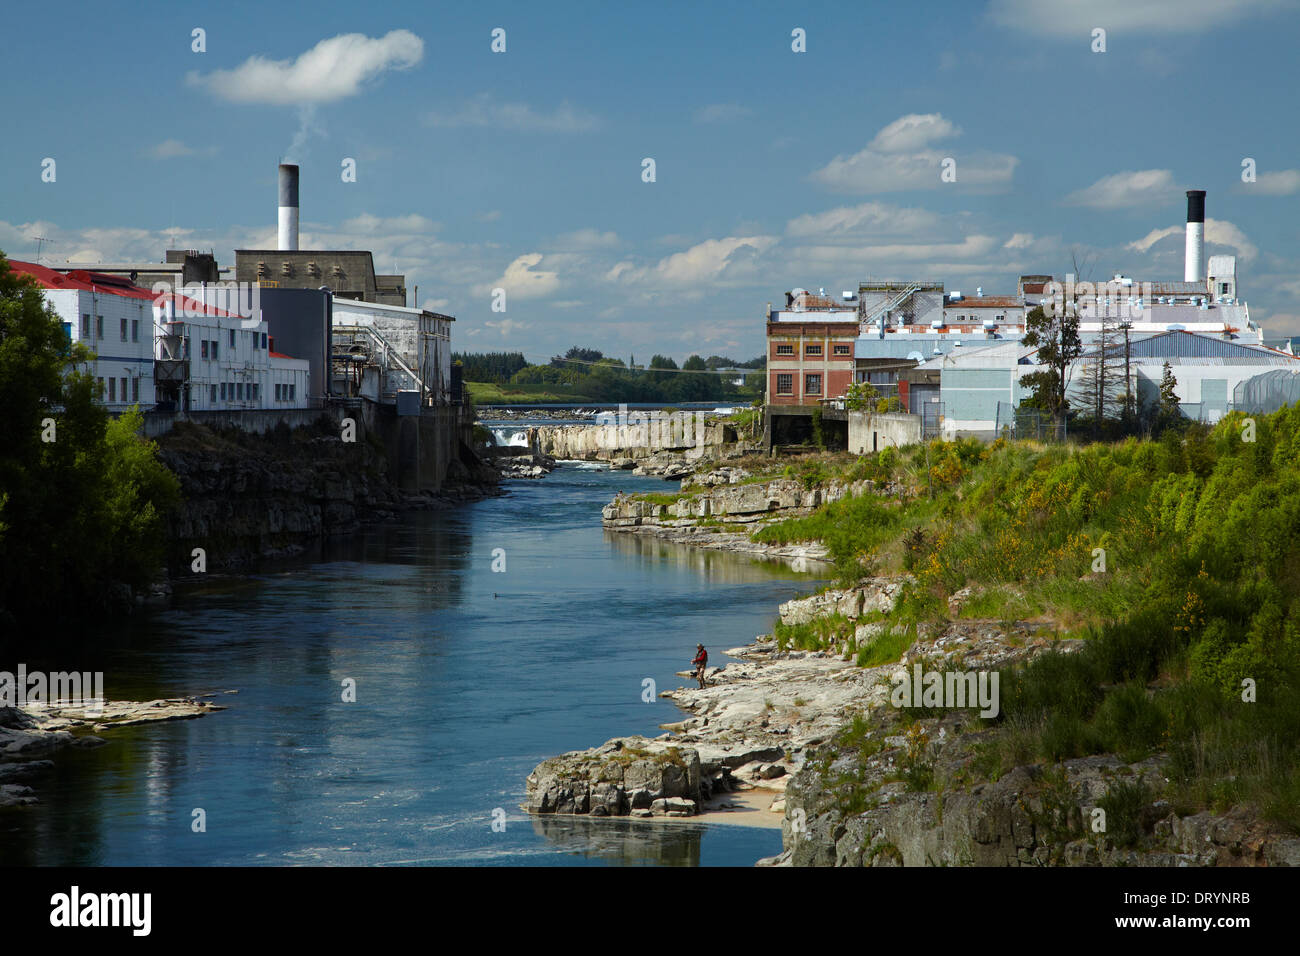 Factories by Mataura River, Mataura, Southland, South Island, New Zealand - Stock Image